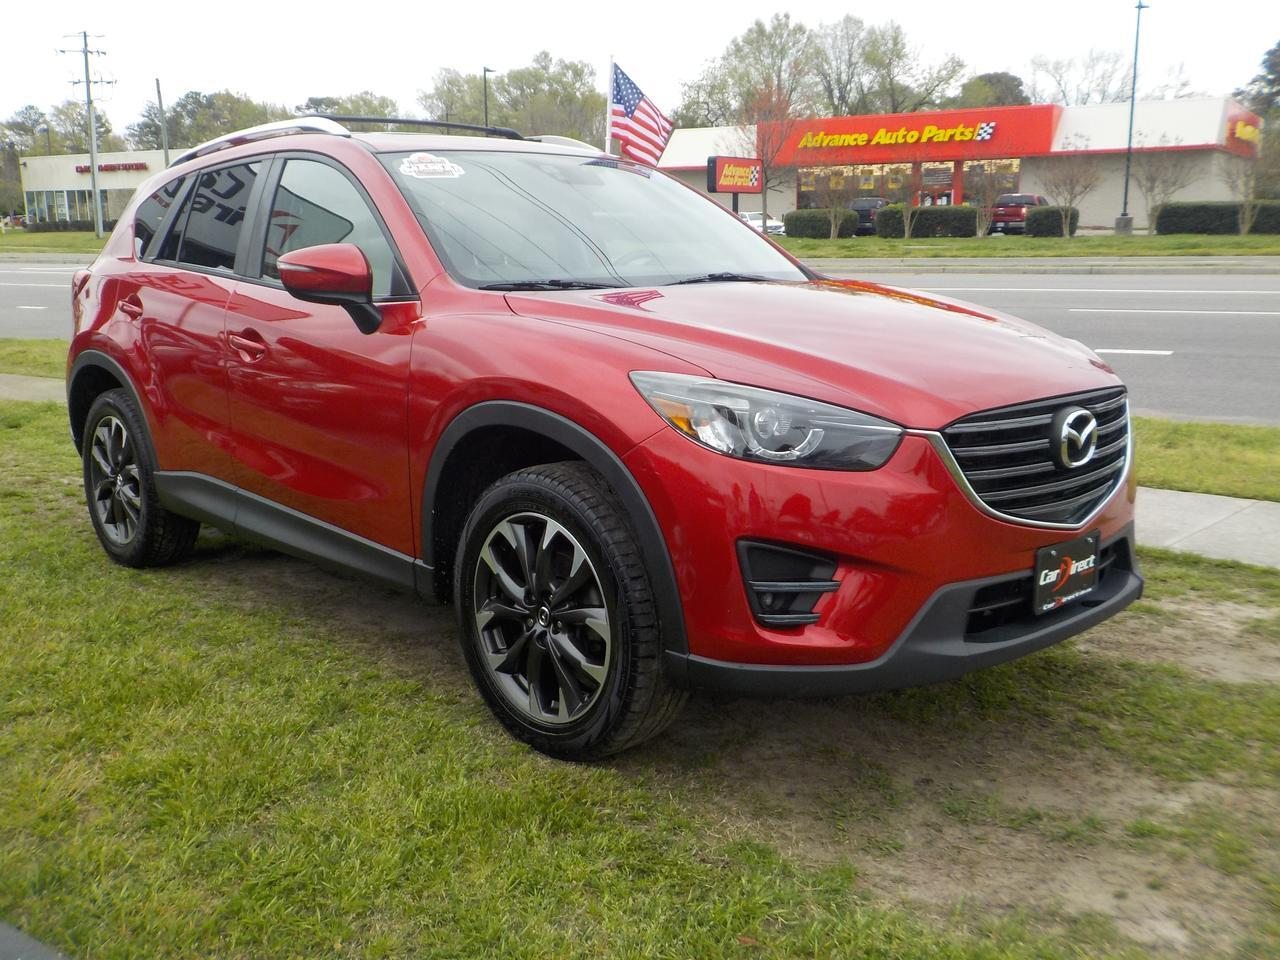 2016 MAZDA CX-5 GRAND TOURING, WARRANTY, NAVIGATION, SUNROOF, ROOF RACKS, BACKUP CAMERA, BOSE SOUND SYSTEM, AUX PORT Virginia Beach VA